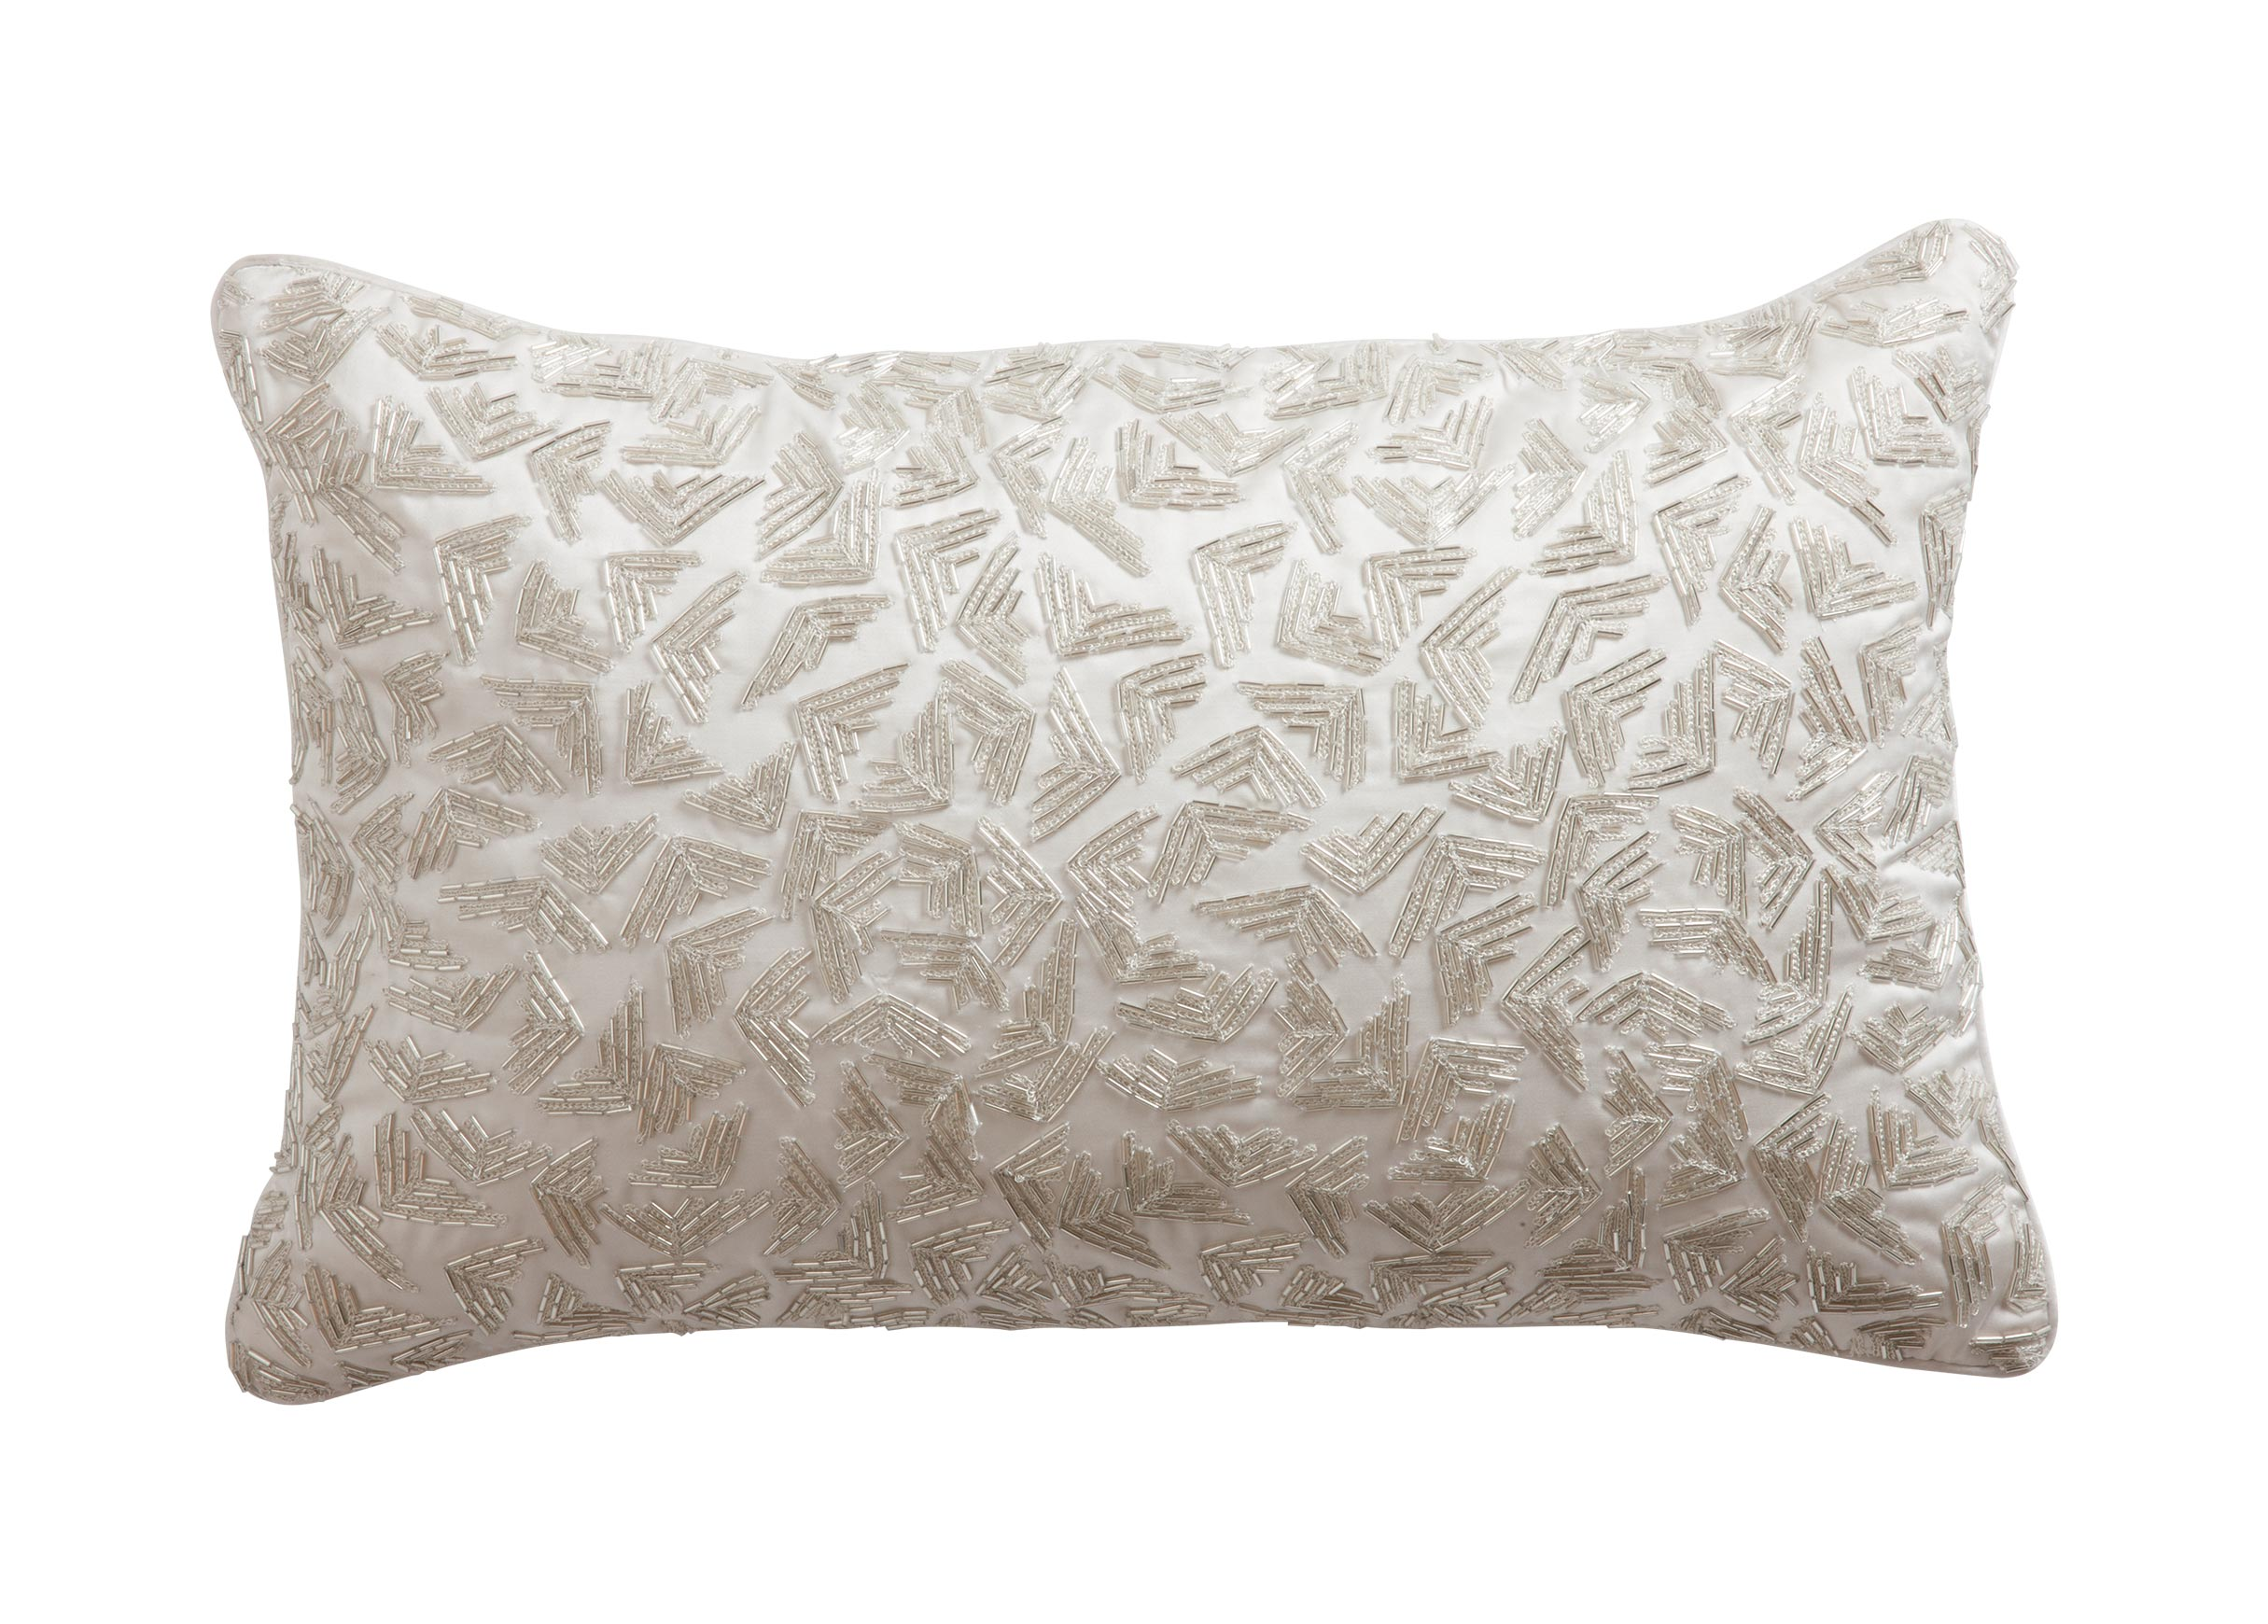 Beaded Pillows At Ethan Allen